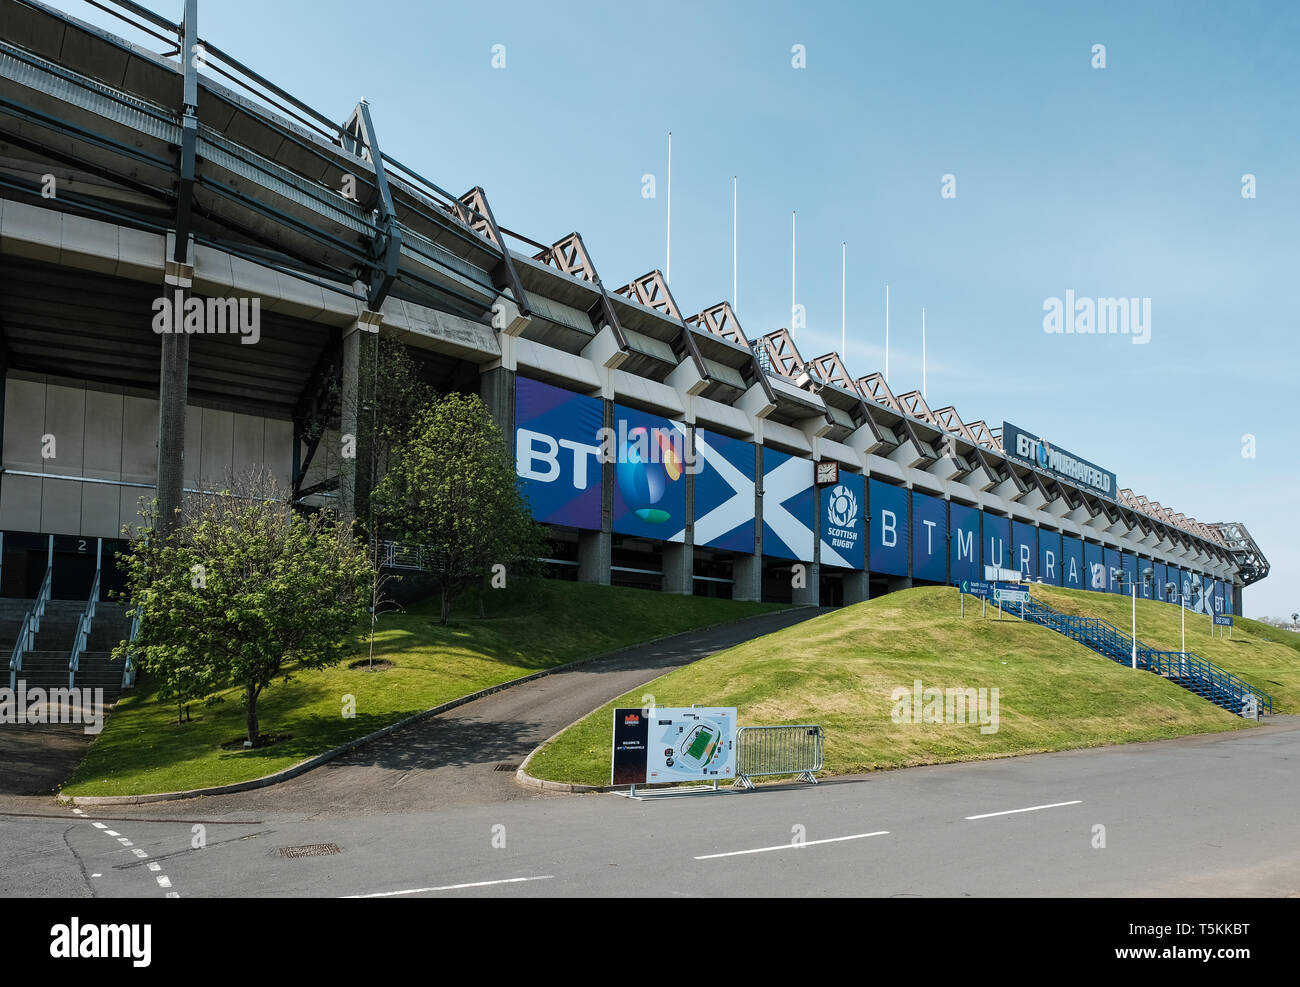 Exterior view of the east side of Murrayfield rugby football stadium in Edinburgh on a sunny day, East Lothian, Scotland - Stock Image